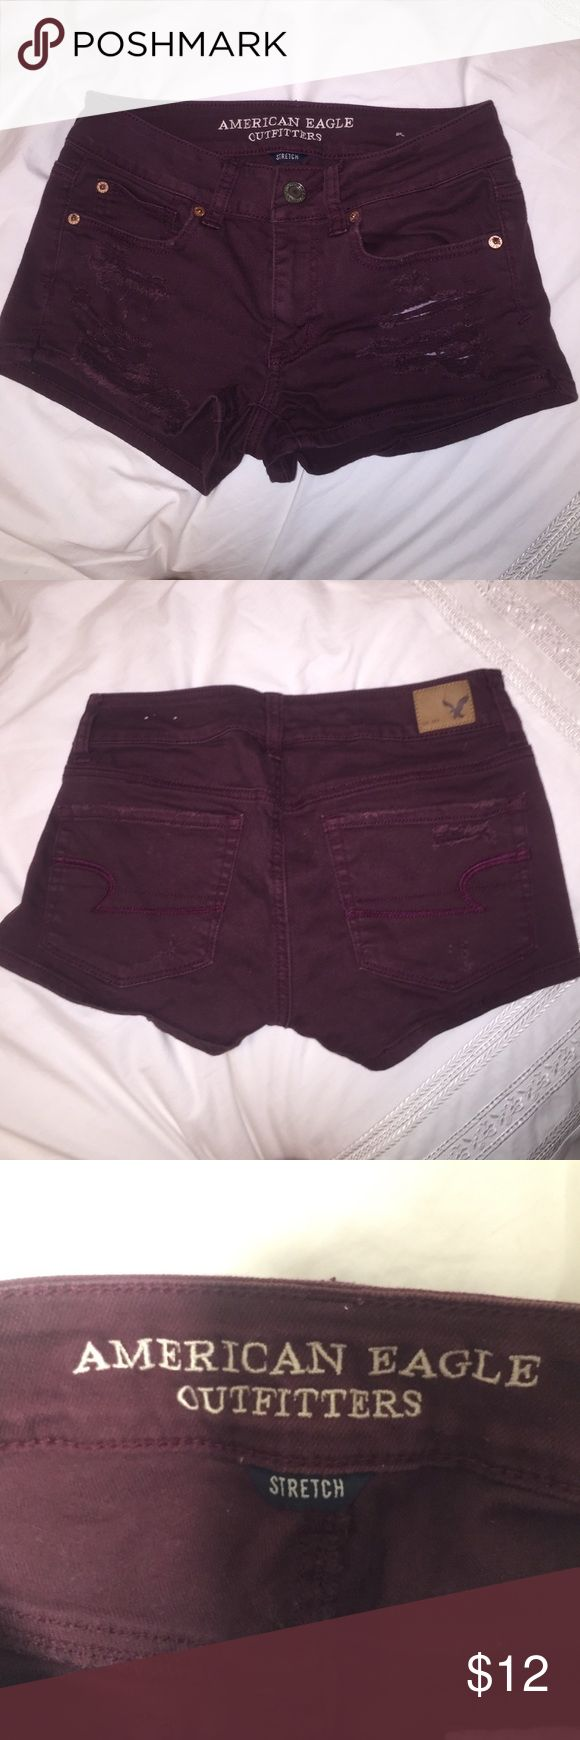 American Eagle Burgundy Shorts Shortie shorts from AEO. Not high-waisted. Barely worn! Save on my end of summer sale!! American Eagle Outfitters Shorts